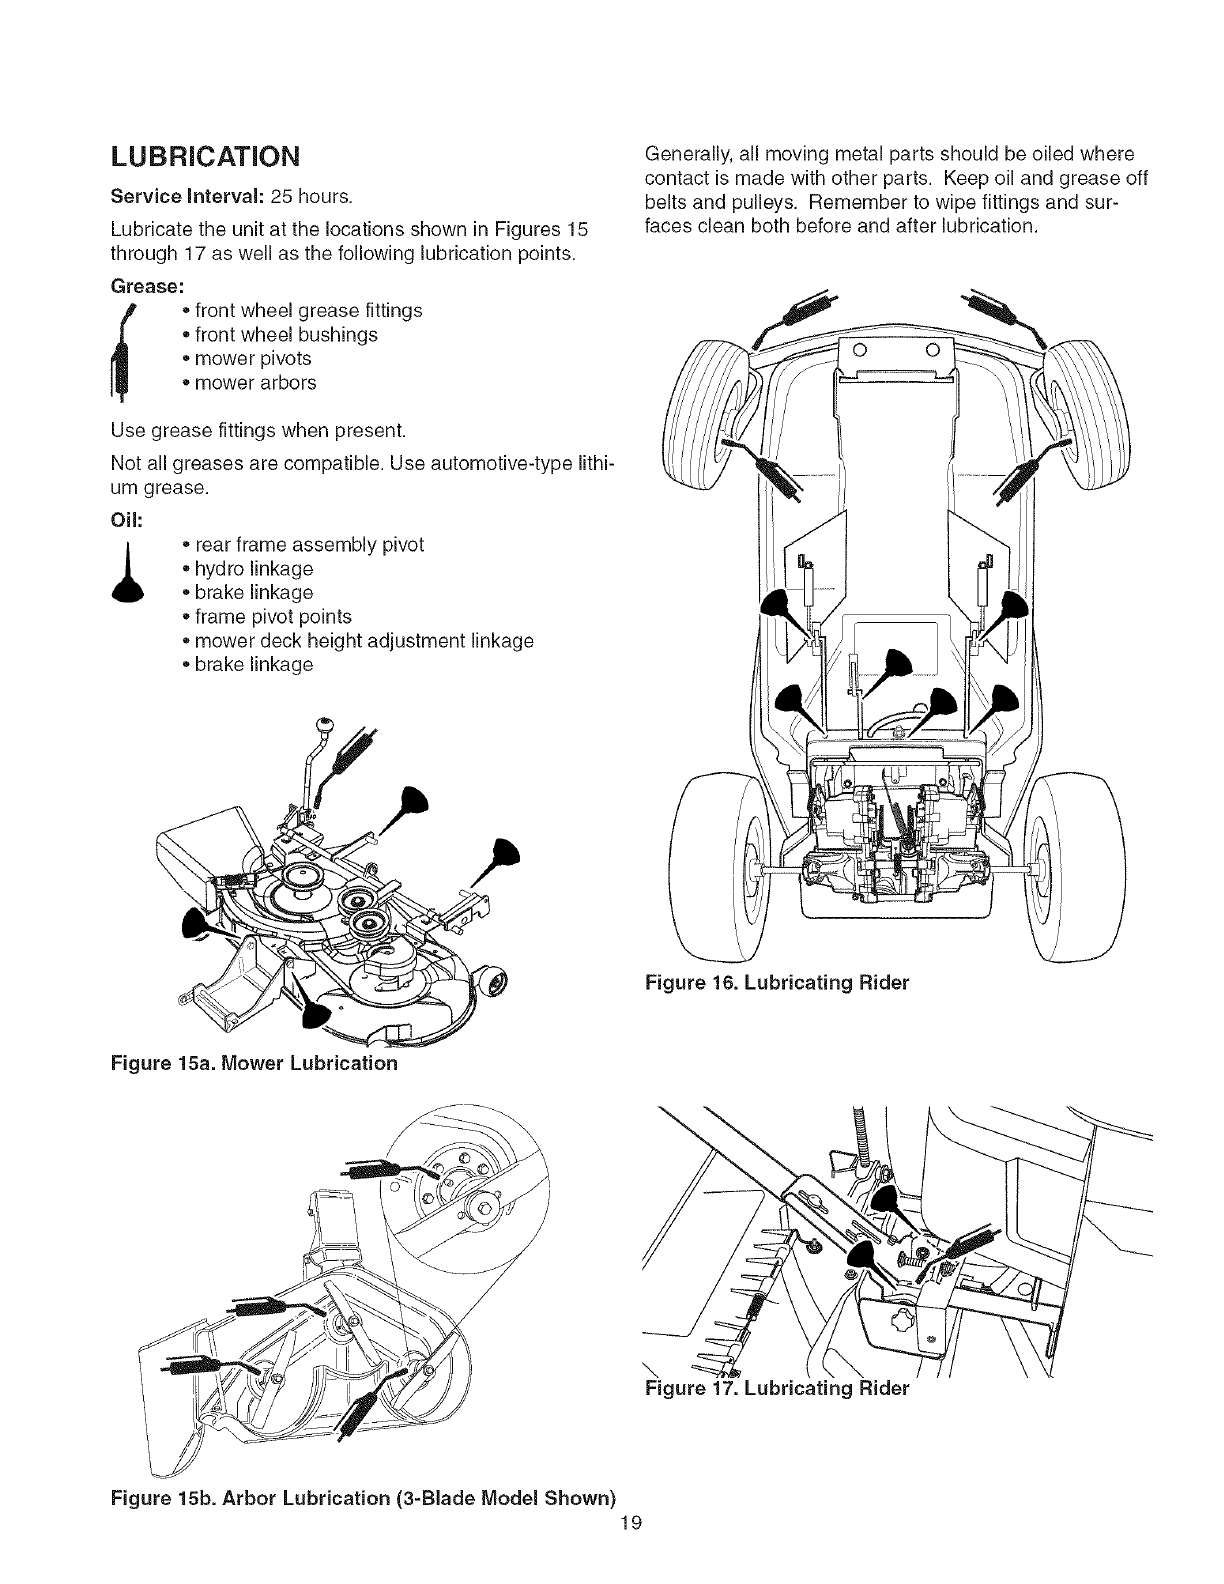 Mtd Yard Machines Parts Diagram also John Deere X165 Garden Tractor Spare Parts further Craftsman Riding Lawn Mower Brake Parts together with John Deere Lt160 Engine Diagram furthermore John Deere Js63c Parts Diagram. on john deere x110 garden tractor spare parts